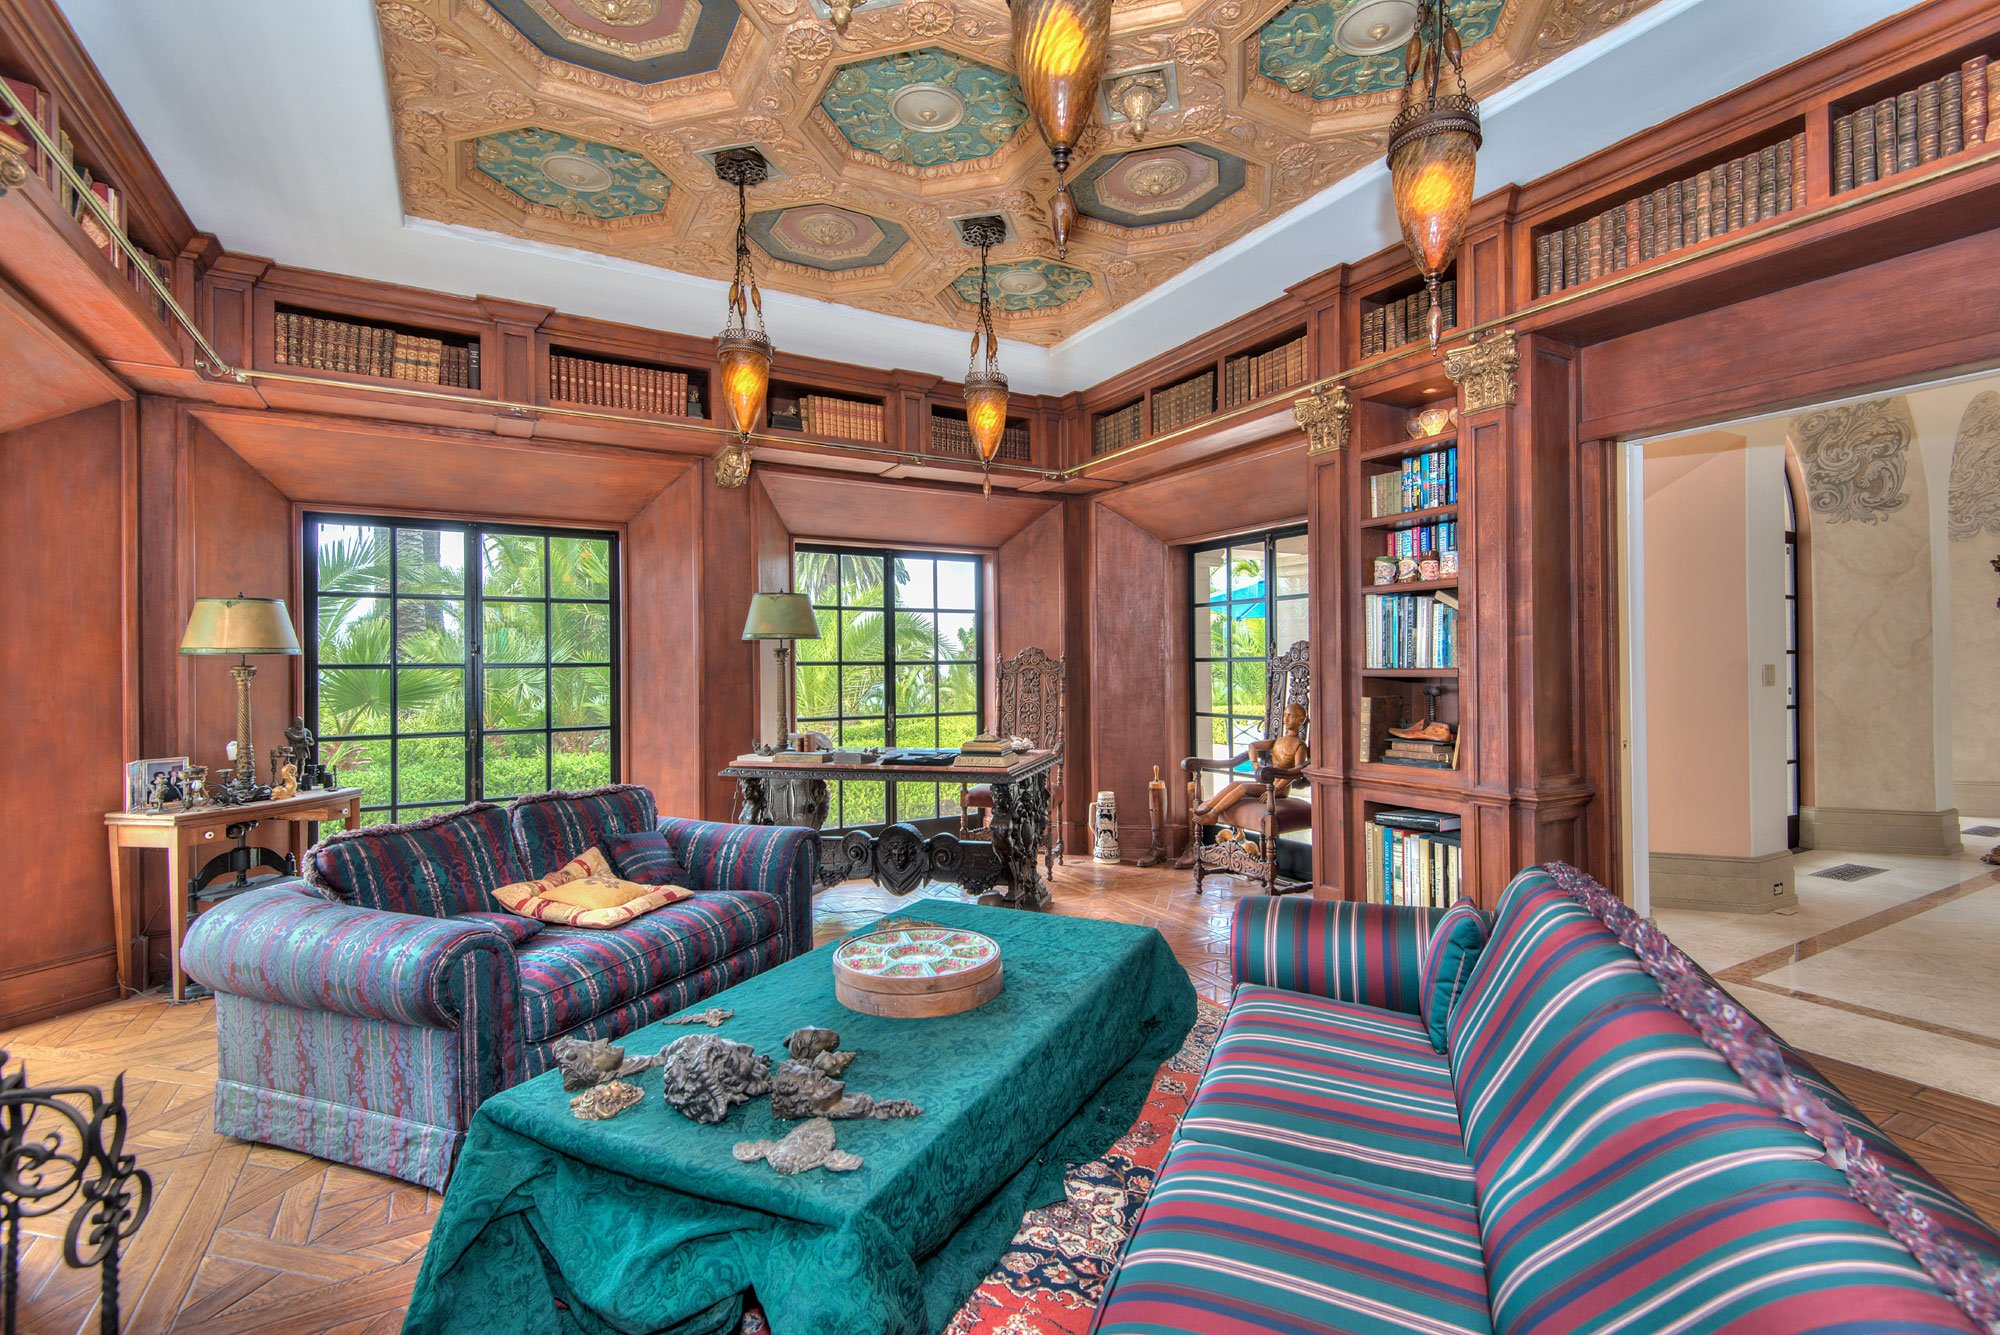 This beautiful Italian-inspired villa in Rancho Palos Verdes, California, has a spectacular wood-paneled library with a secret passage beyond the bookcases.